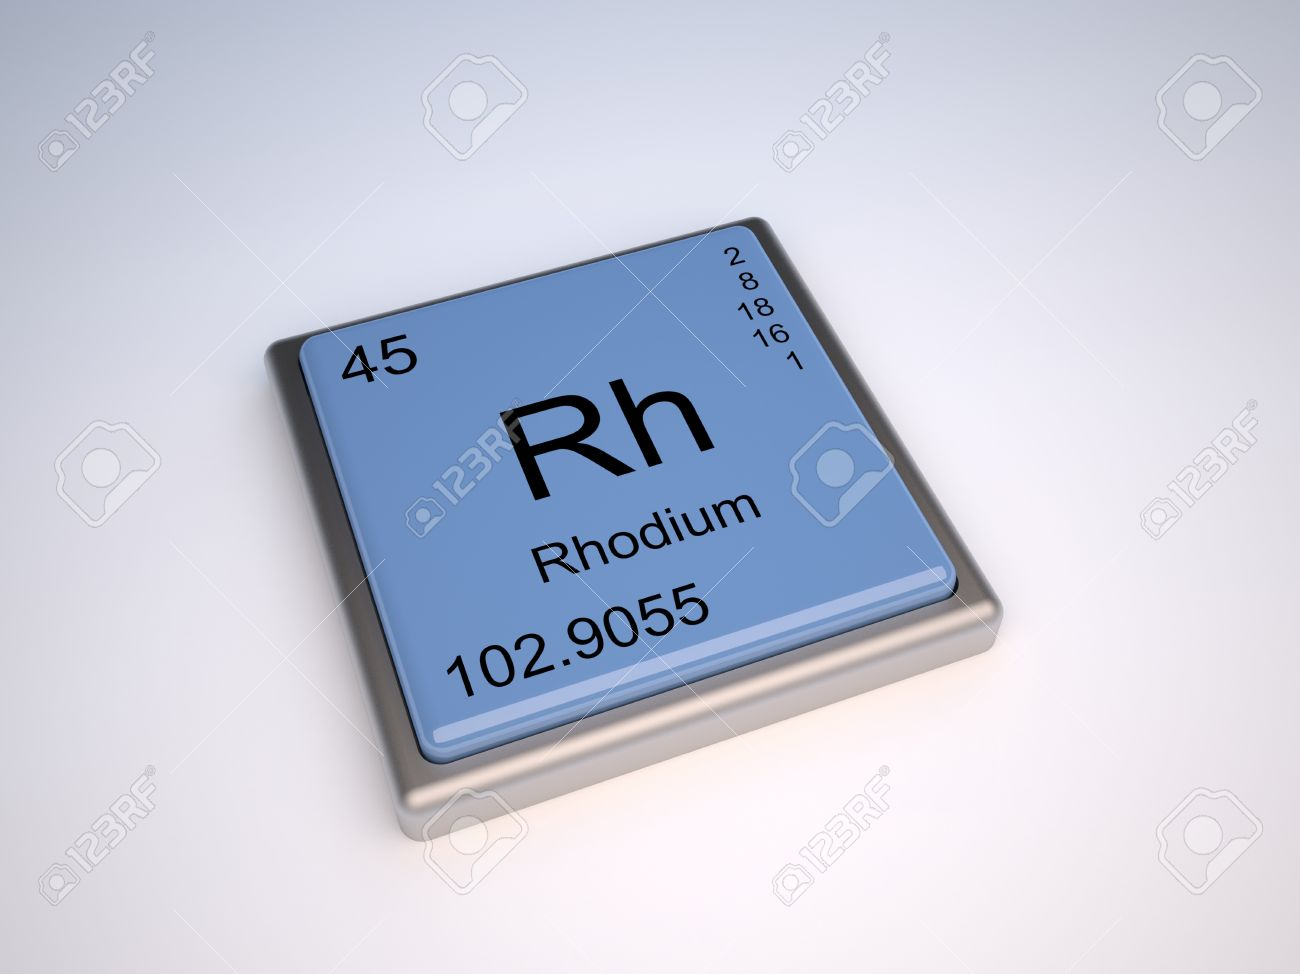 Rhodium chemical element of the periodic table with symbol rh rhodium chemical element of the periodic table with symbol rh stock photo 9257098 gamestrikefo Gallery